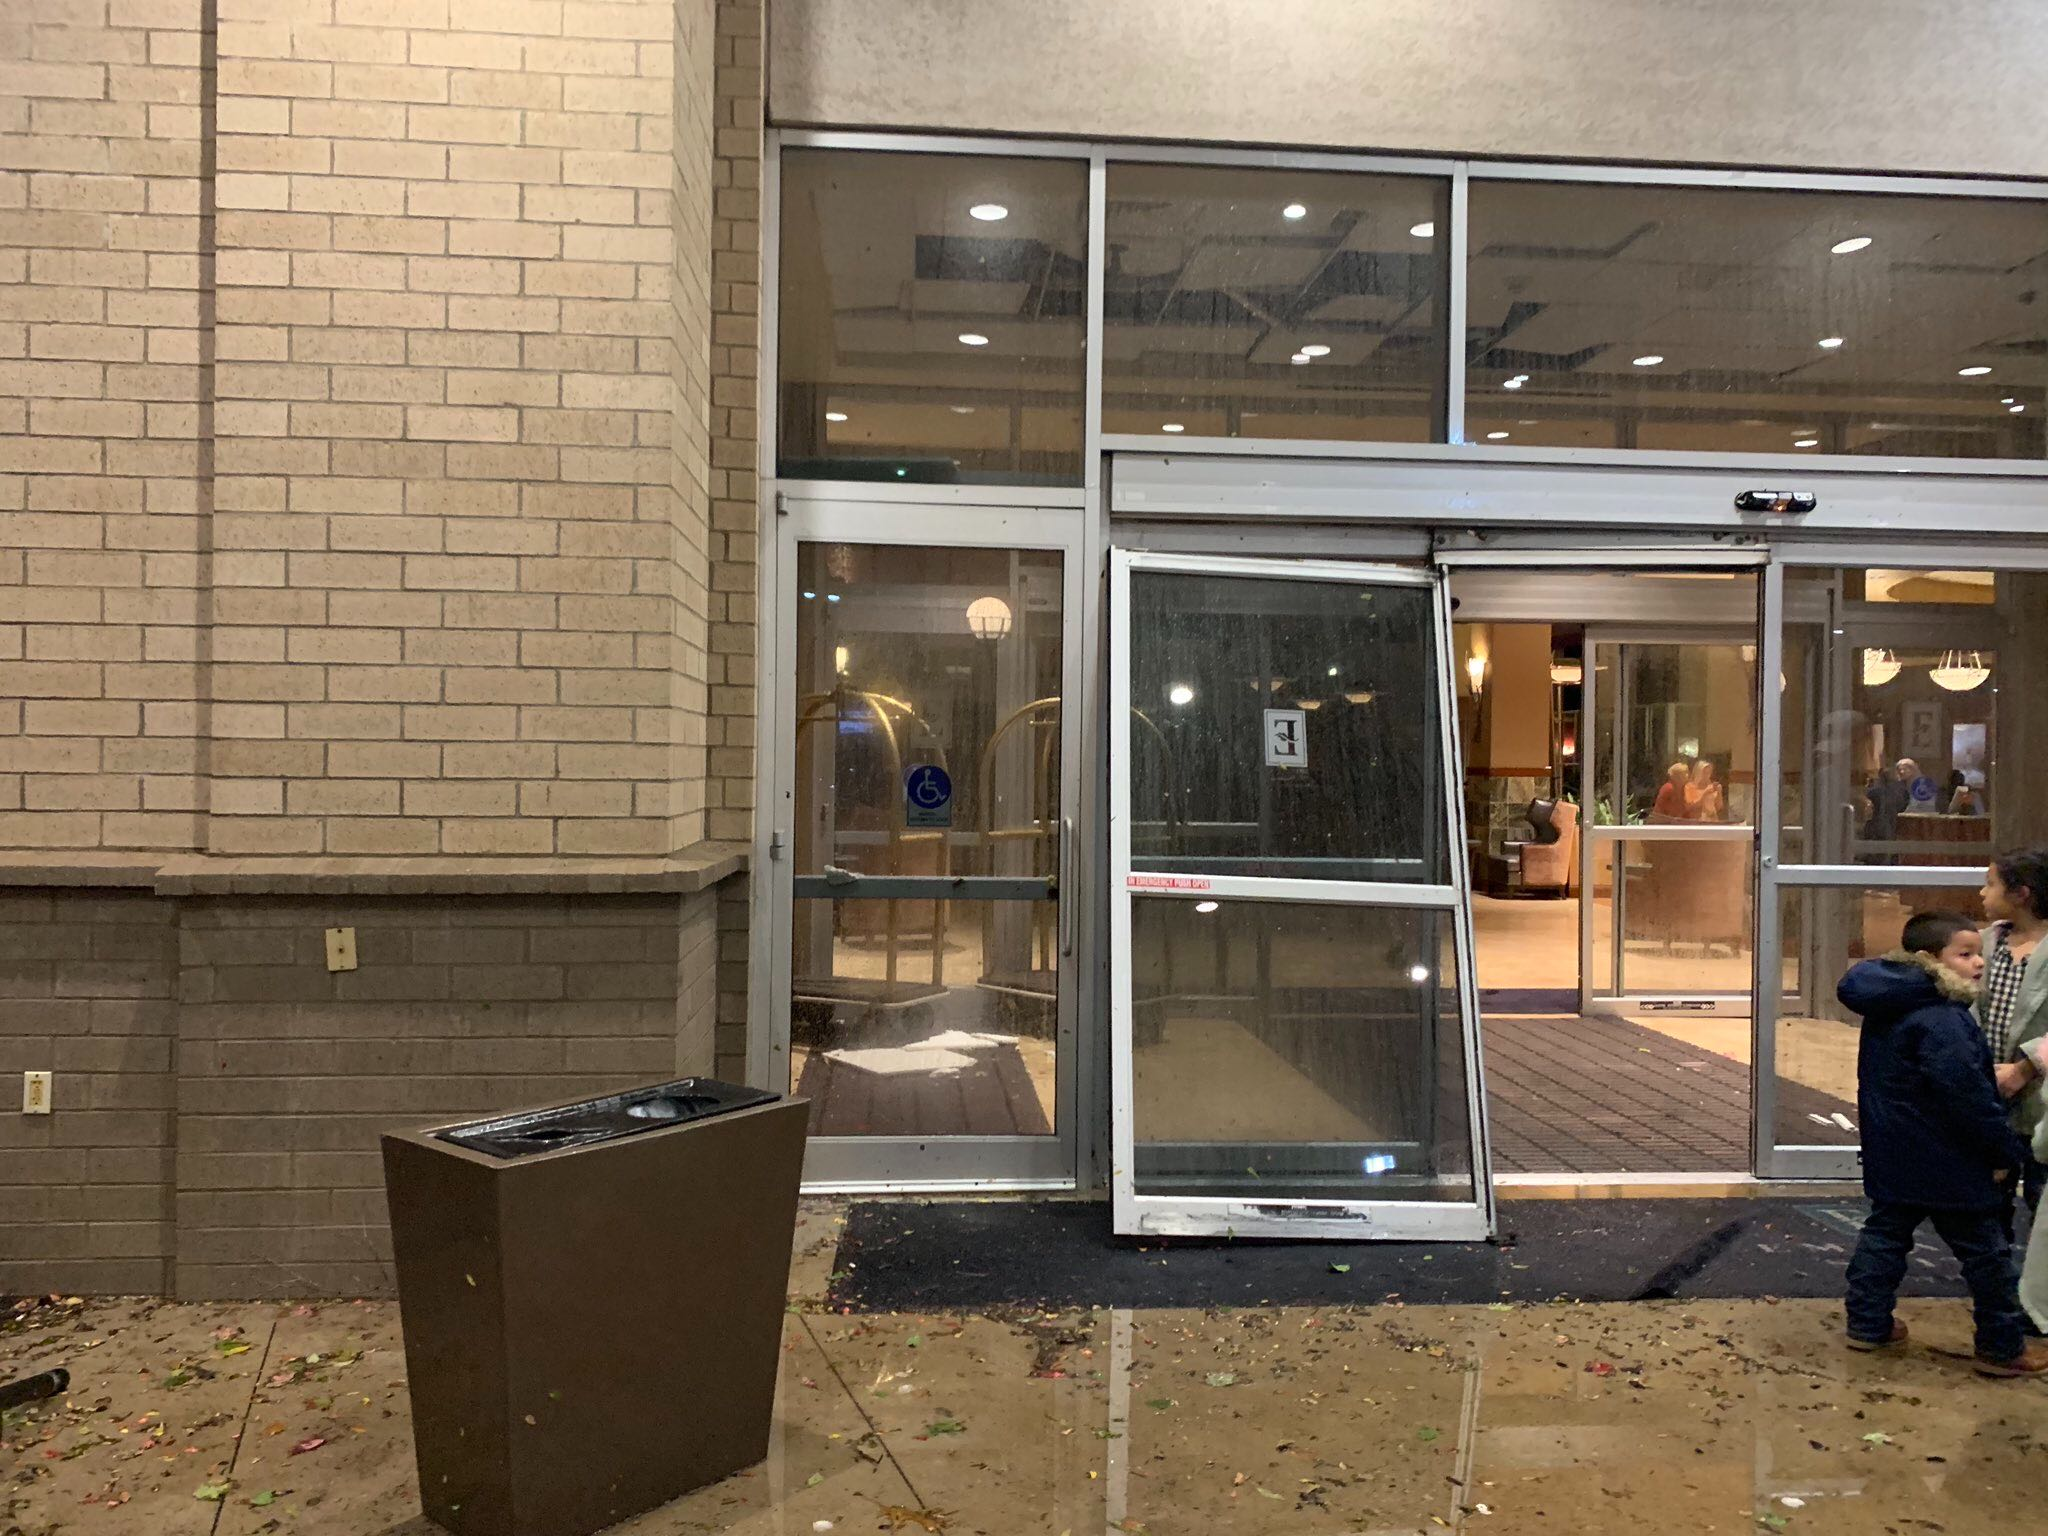 Overnight Storms Bring Damage, Power Outages To Area